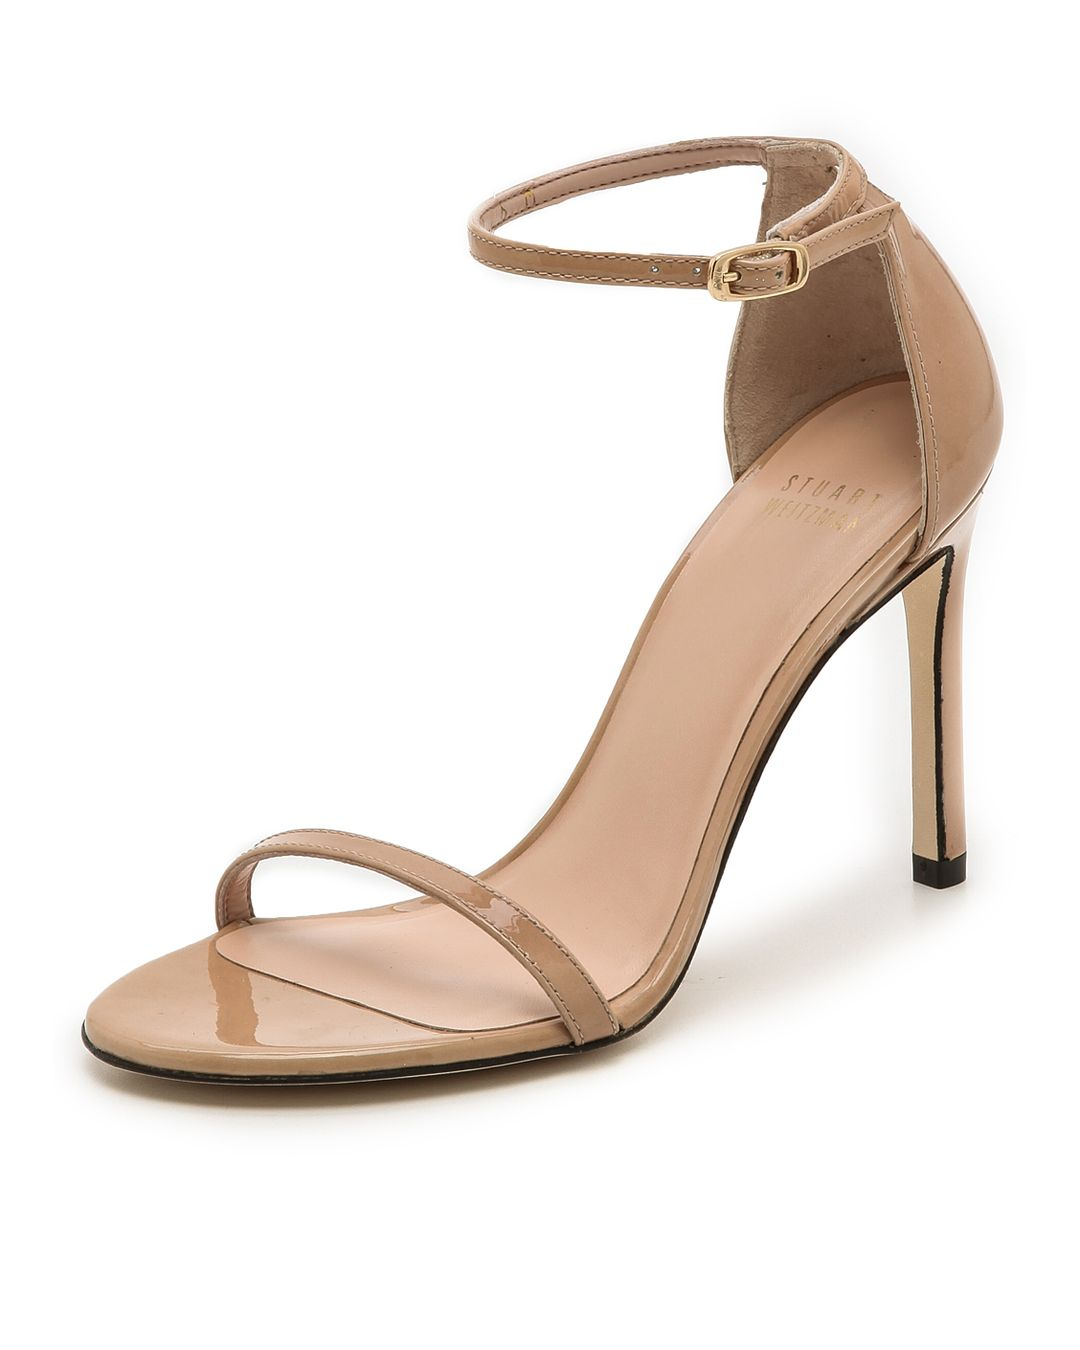 2563a8e30e10 Stuart Weitzman Nudistsong Reviews and prices Only Best Shoes